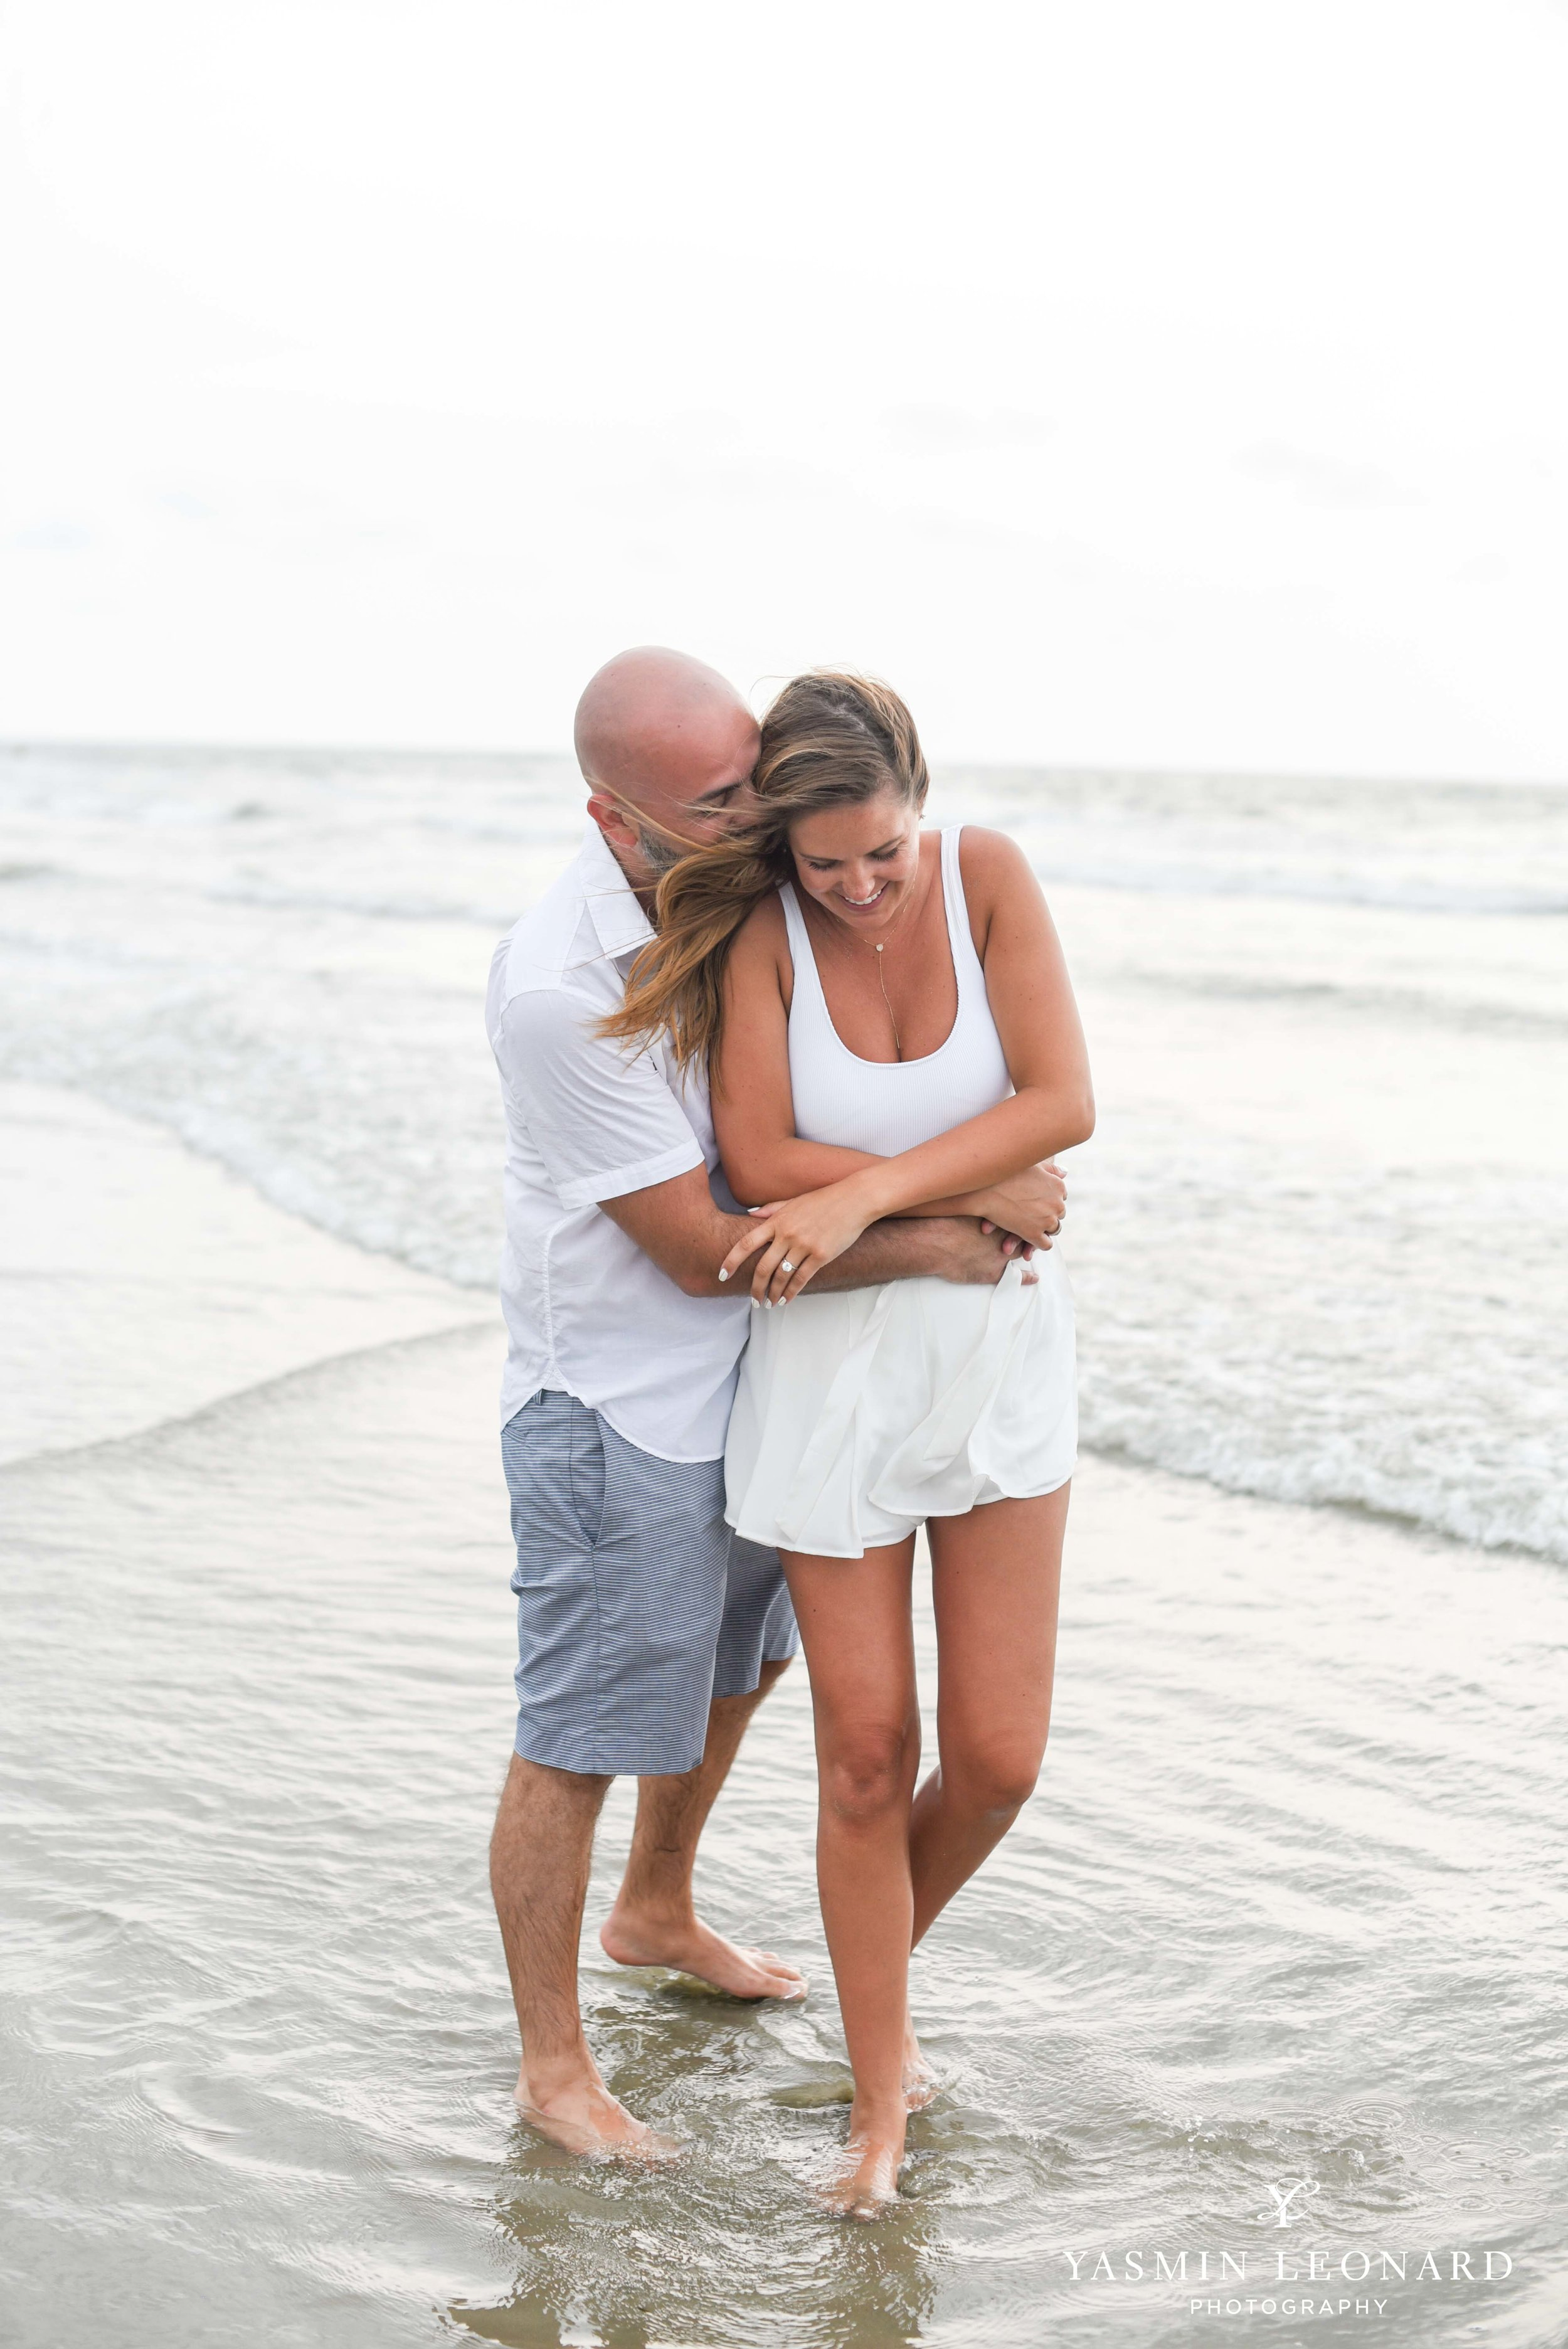 Beach Proposal - Beach Engagement Kiawah Island Photographer - NC Beach Photographer - How He Asked - NC Photographer - Proposal Ideas - Engagement Ring - Yasmin Leonard Photography-14.jpg